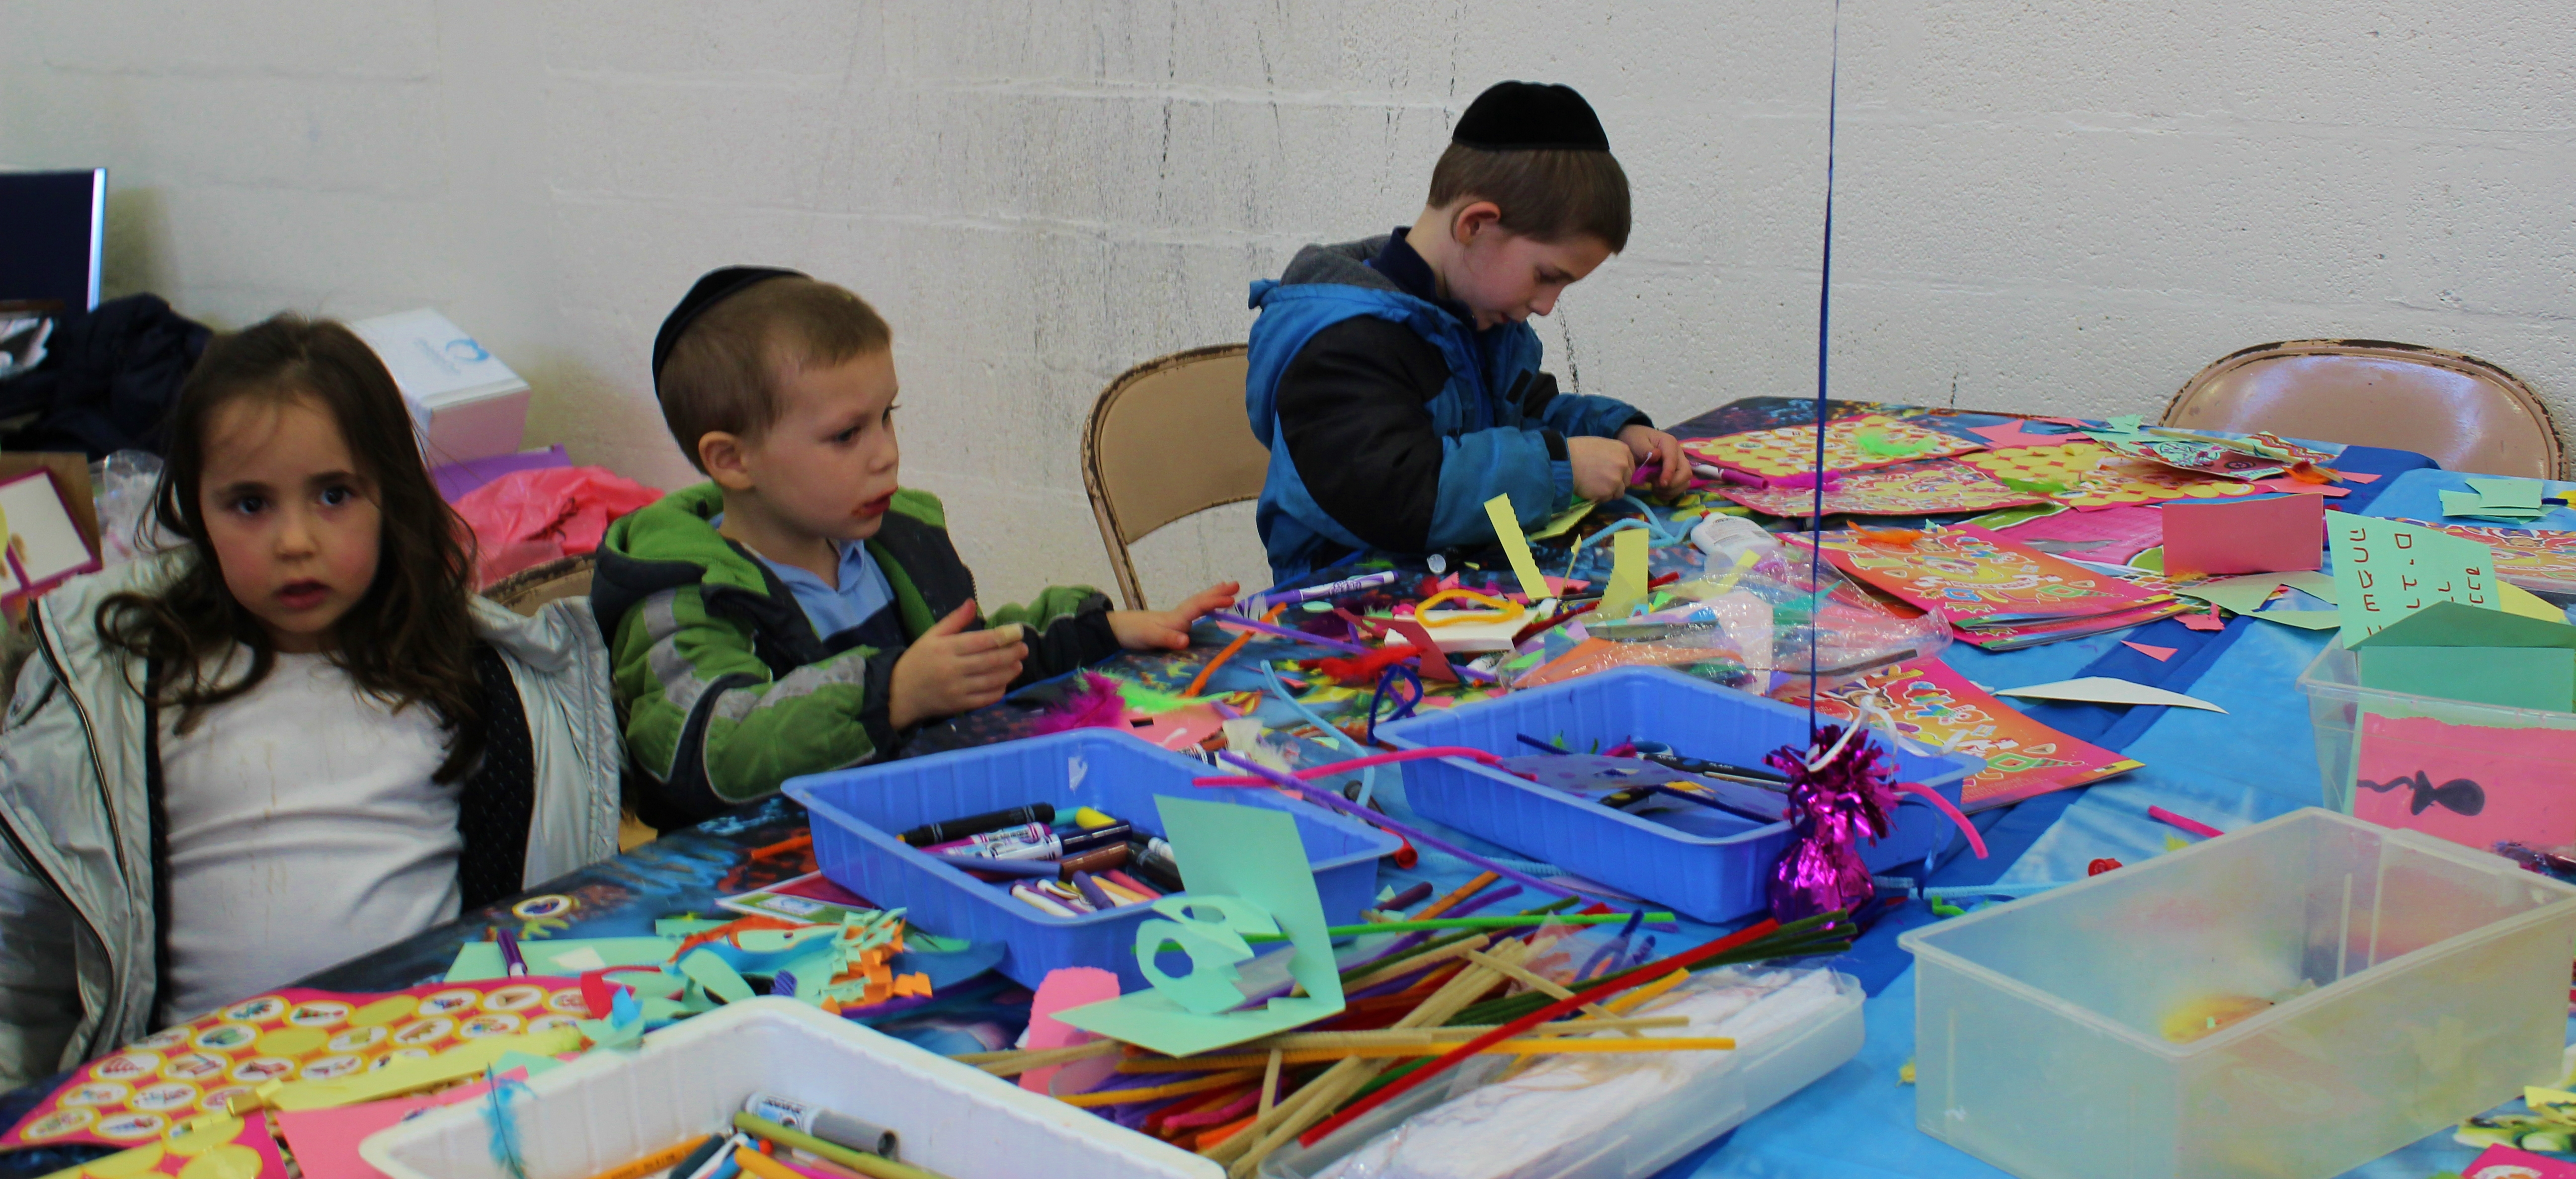 Boys at crafts table